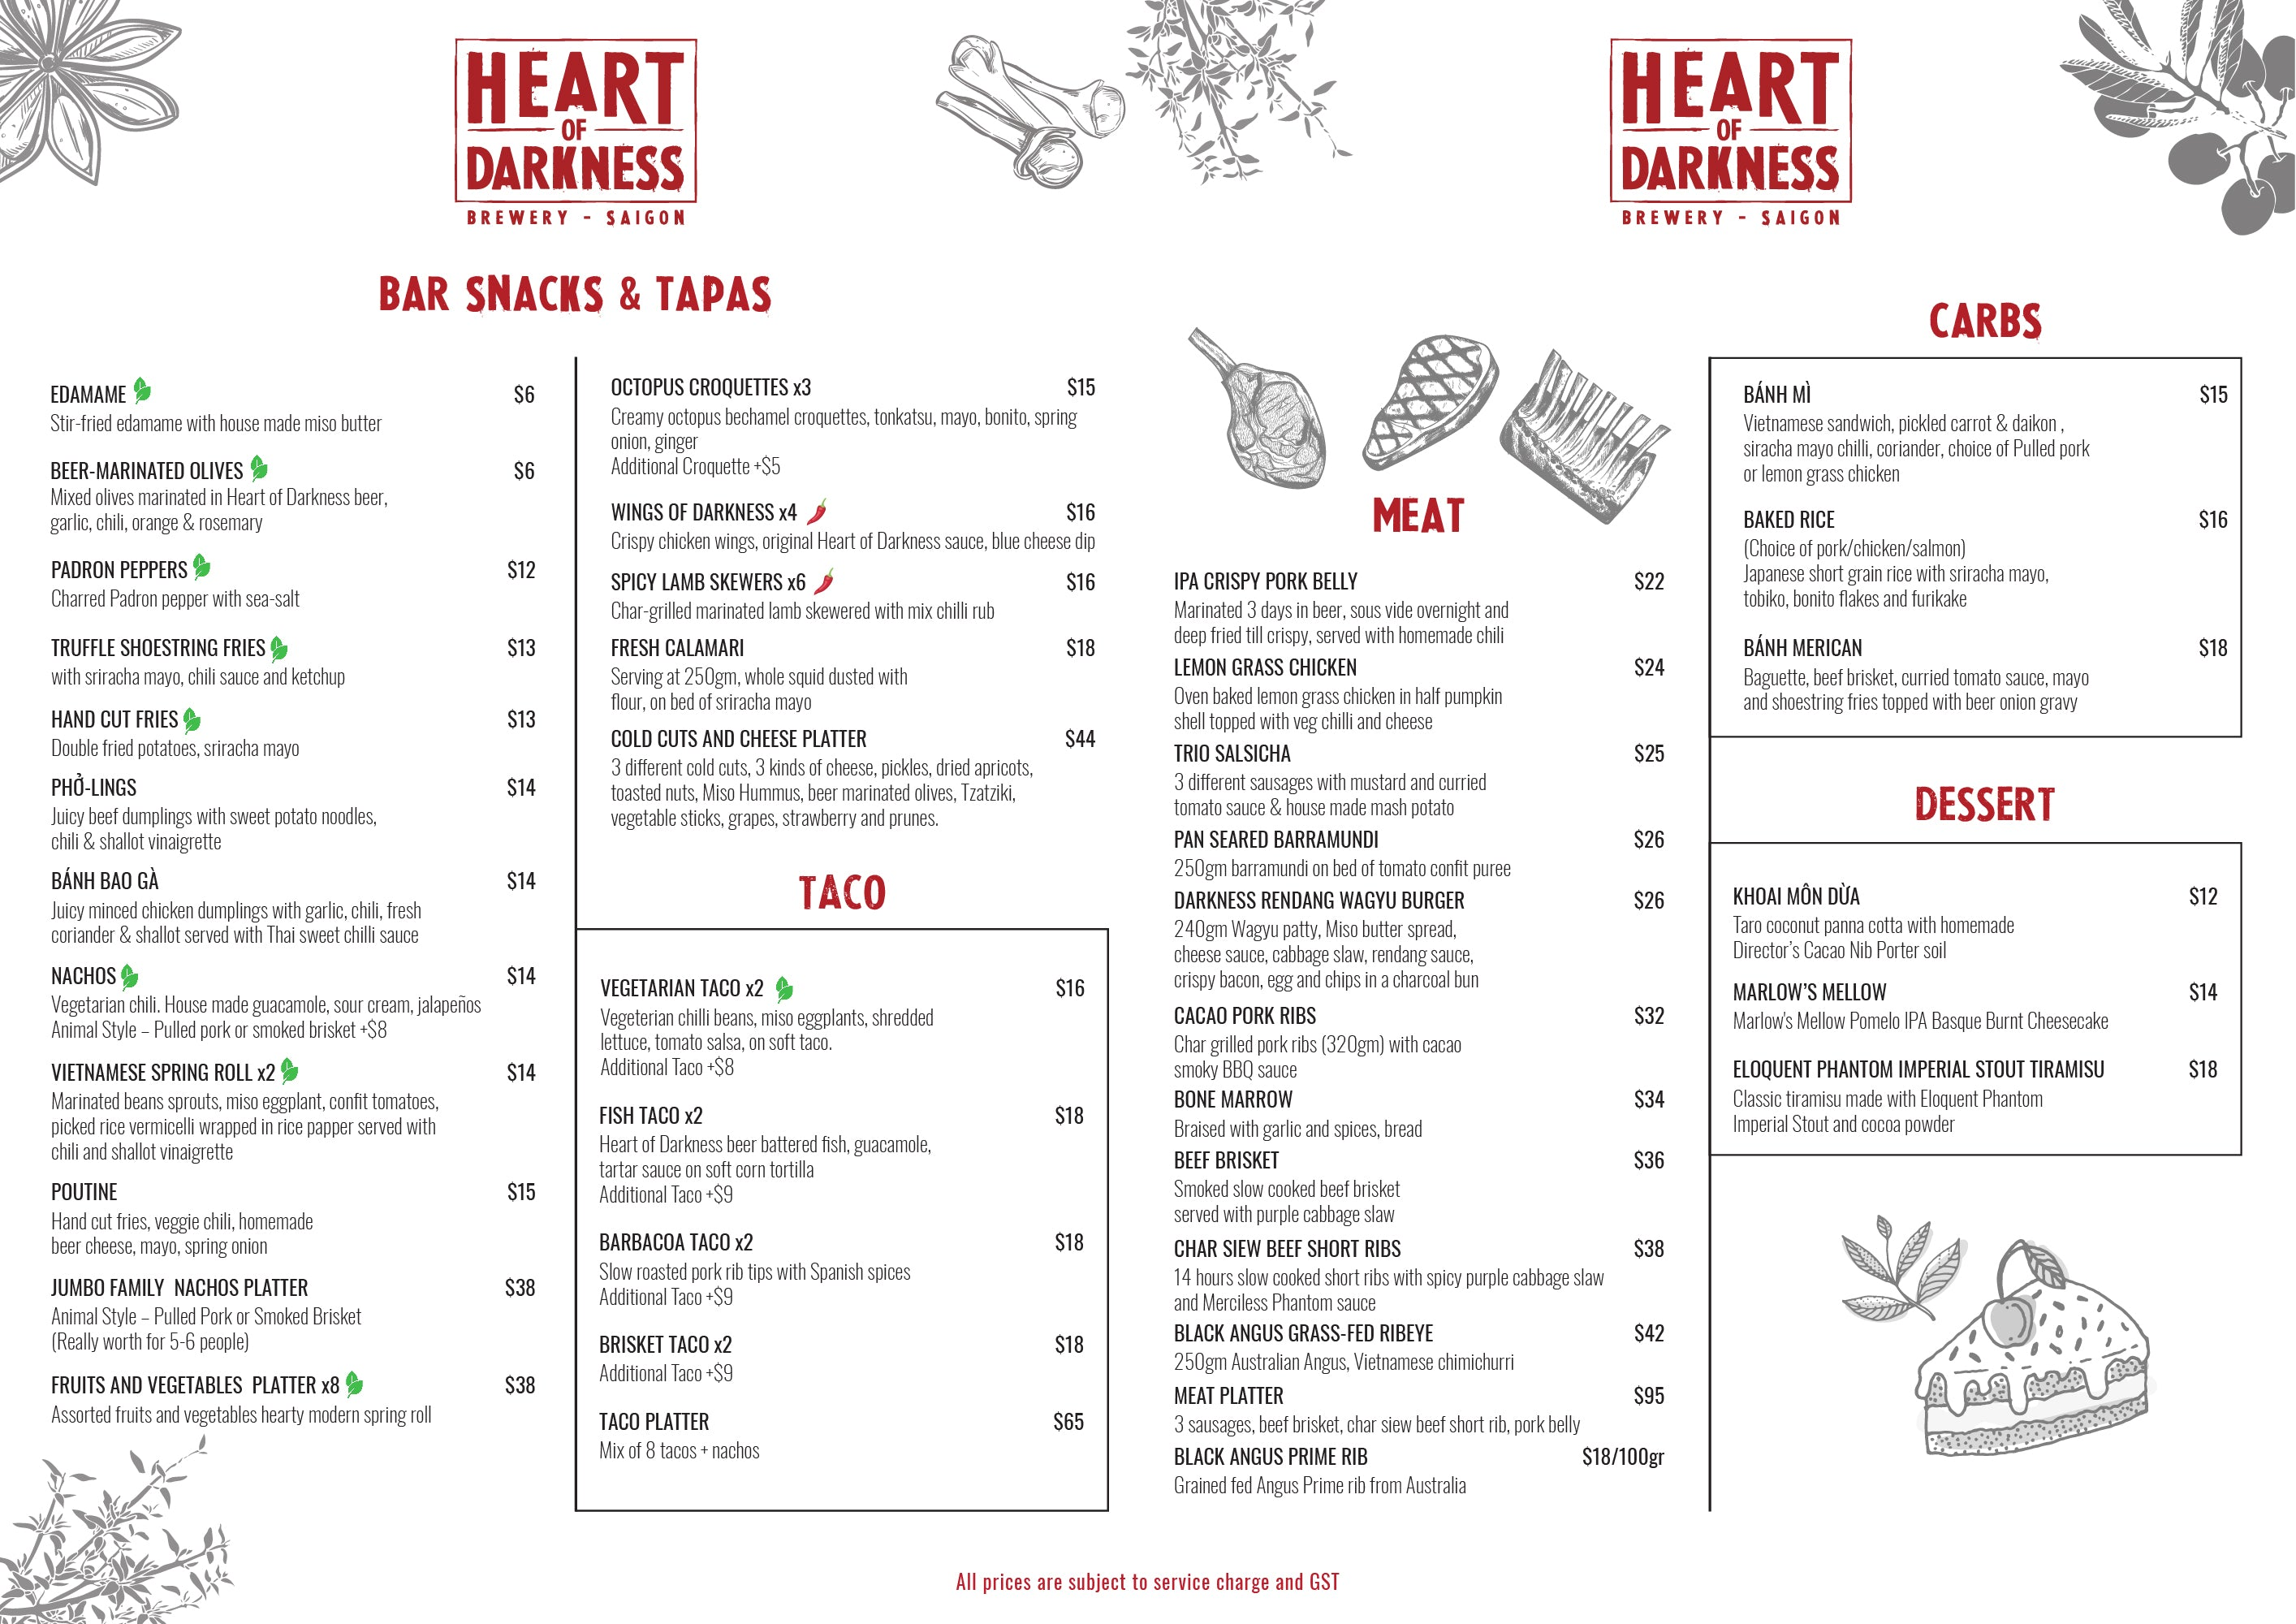 heart of darkness menu singapore